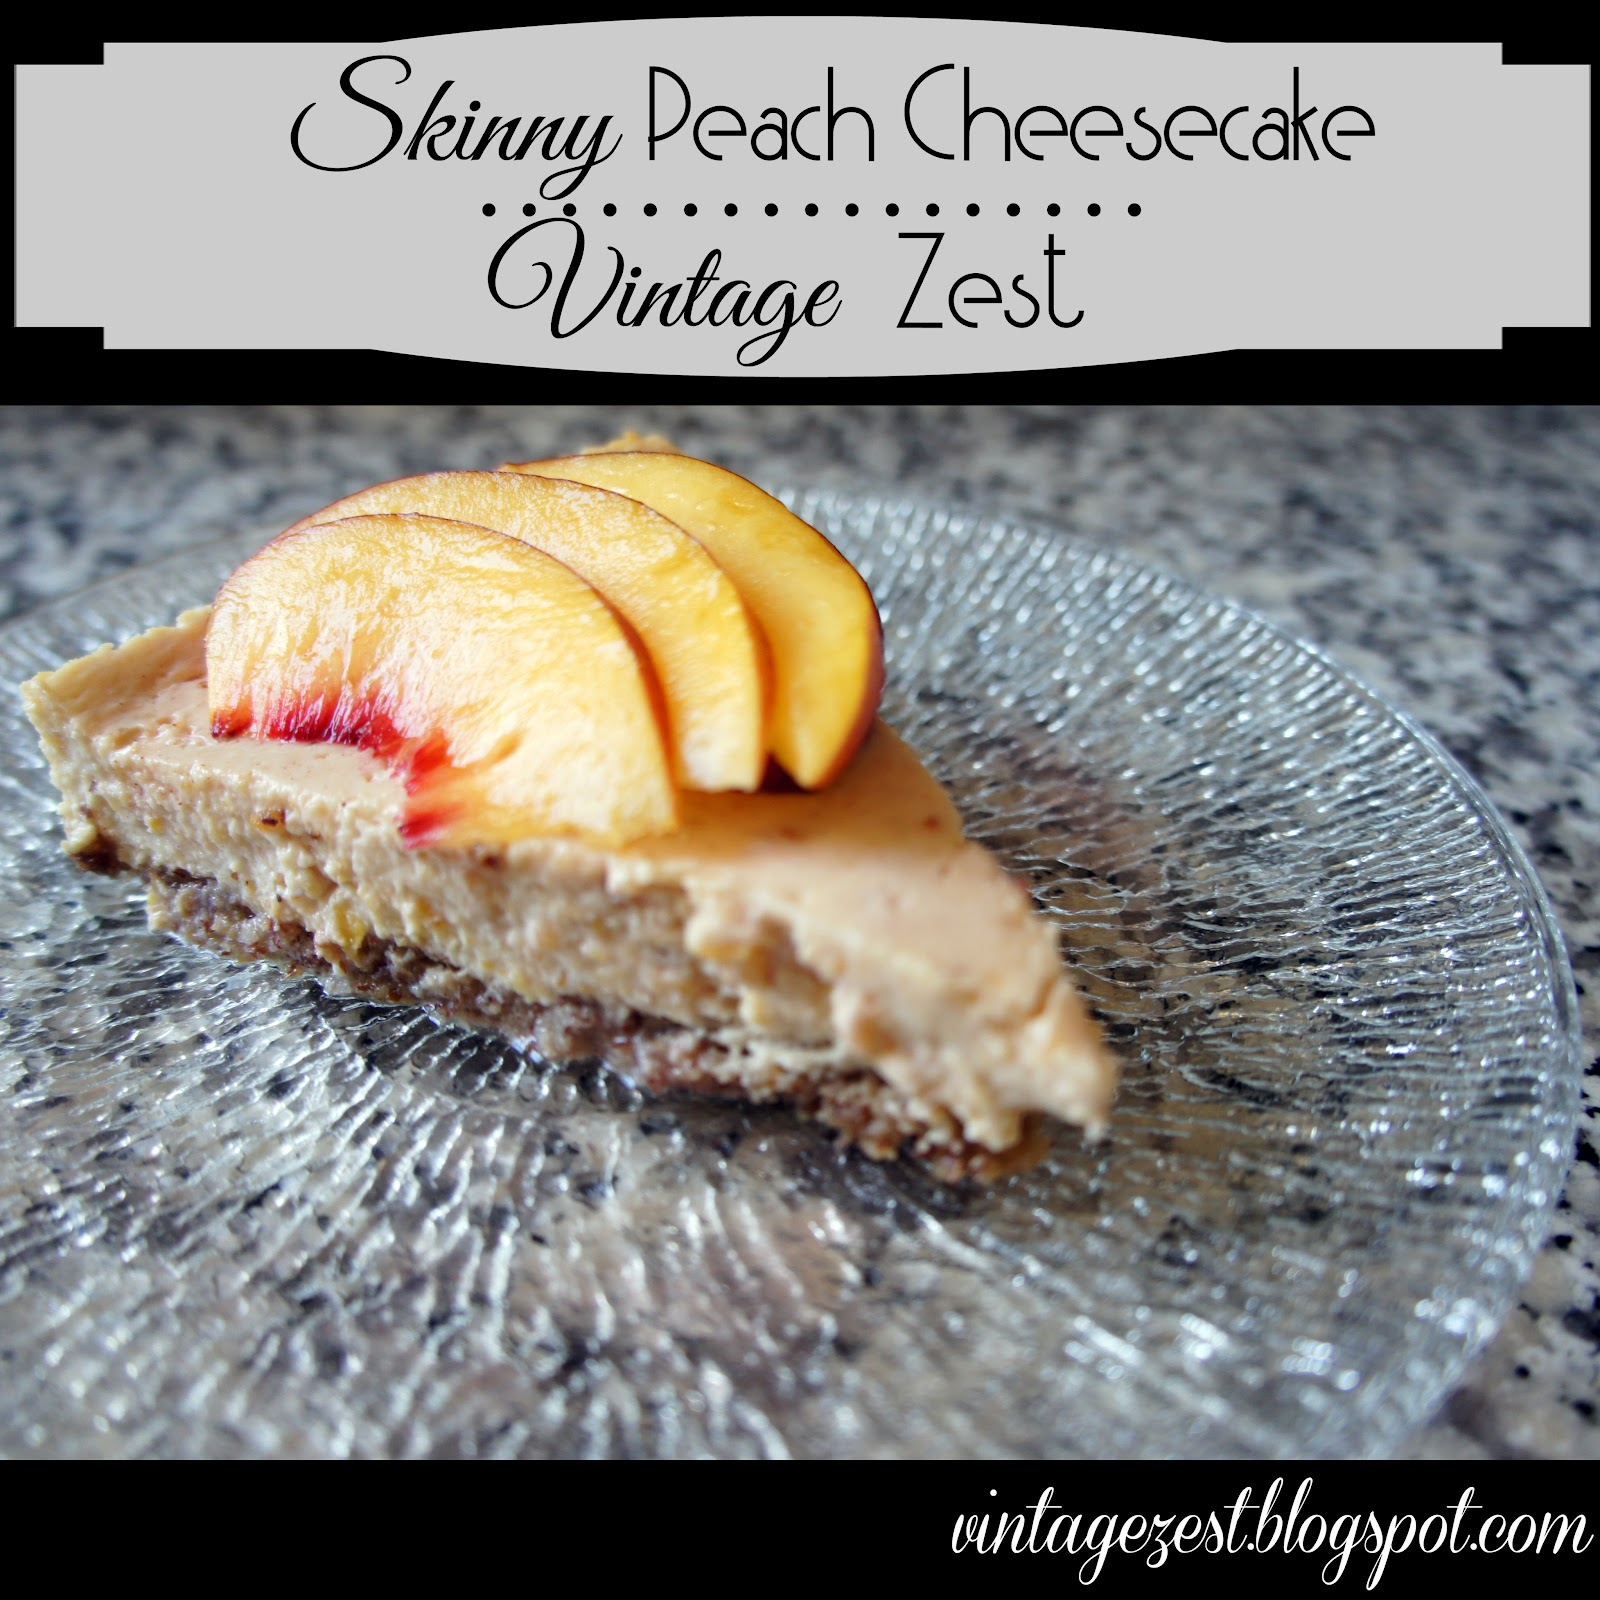 Skinny Peach Cheesecake on Diane's Vintage Zest!